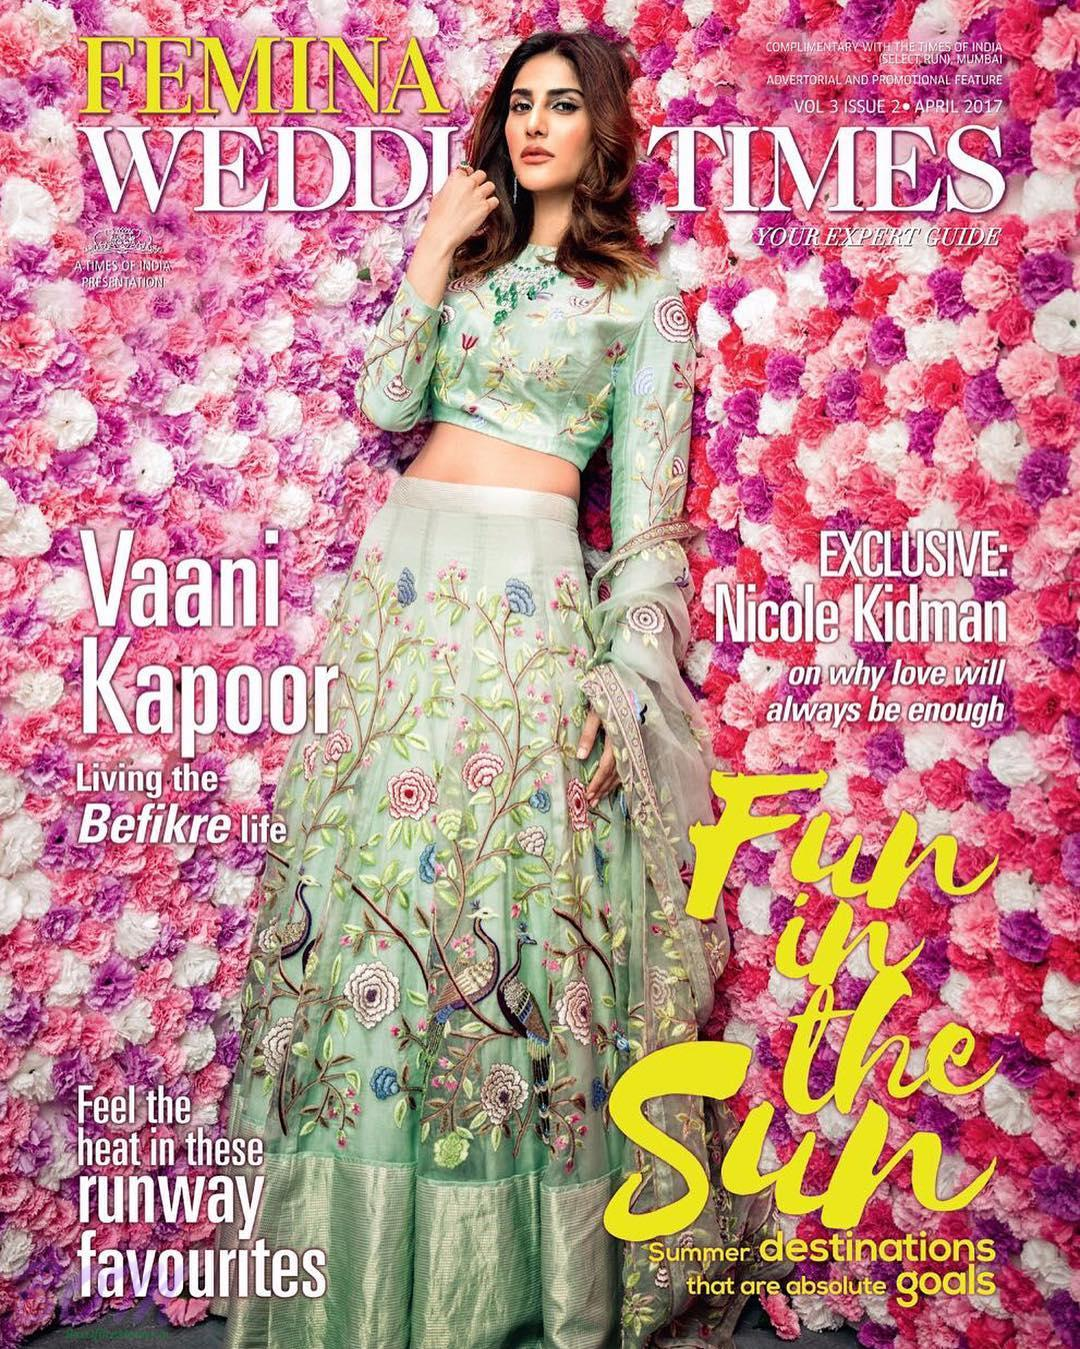 Vaani Kapoor cover girl for FEMINA Wedding Times April 2017 issue